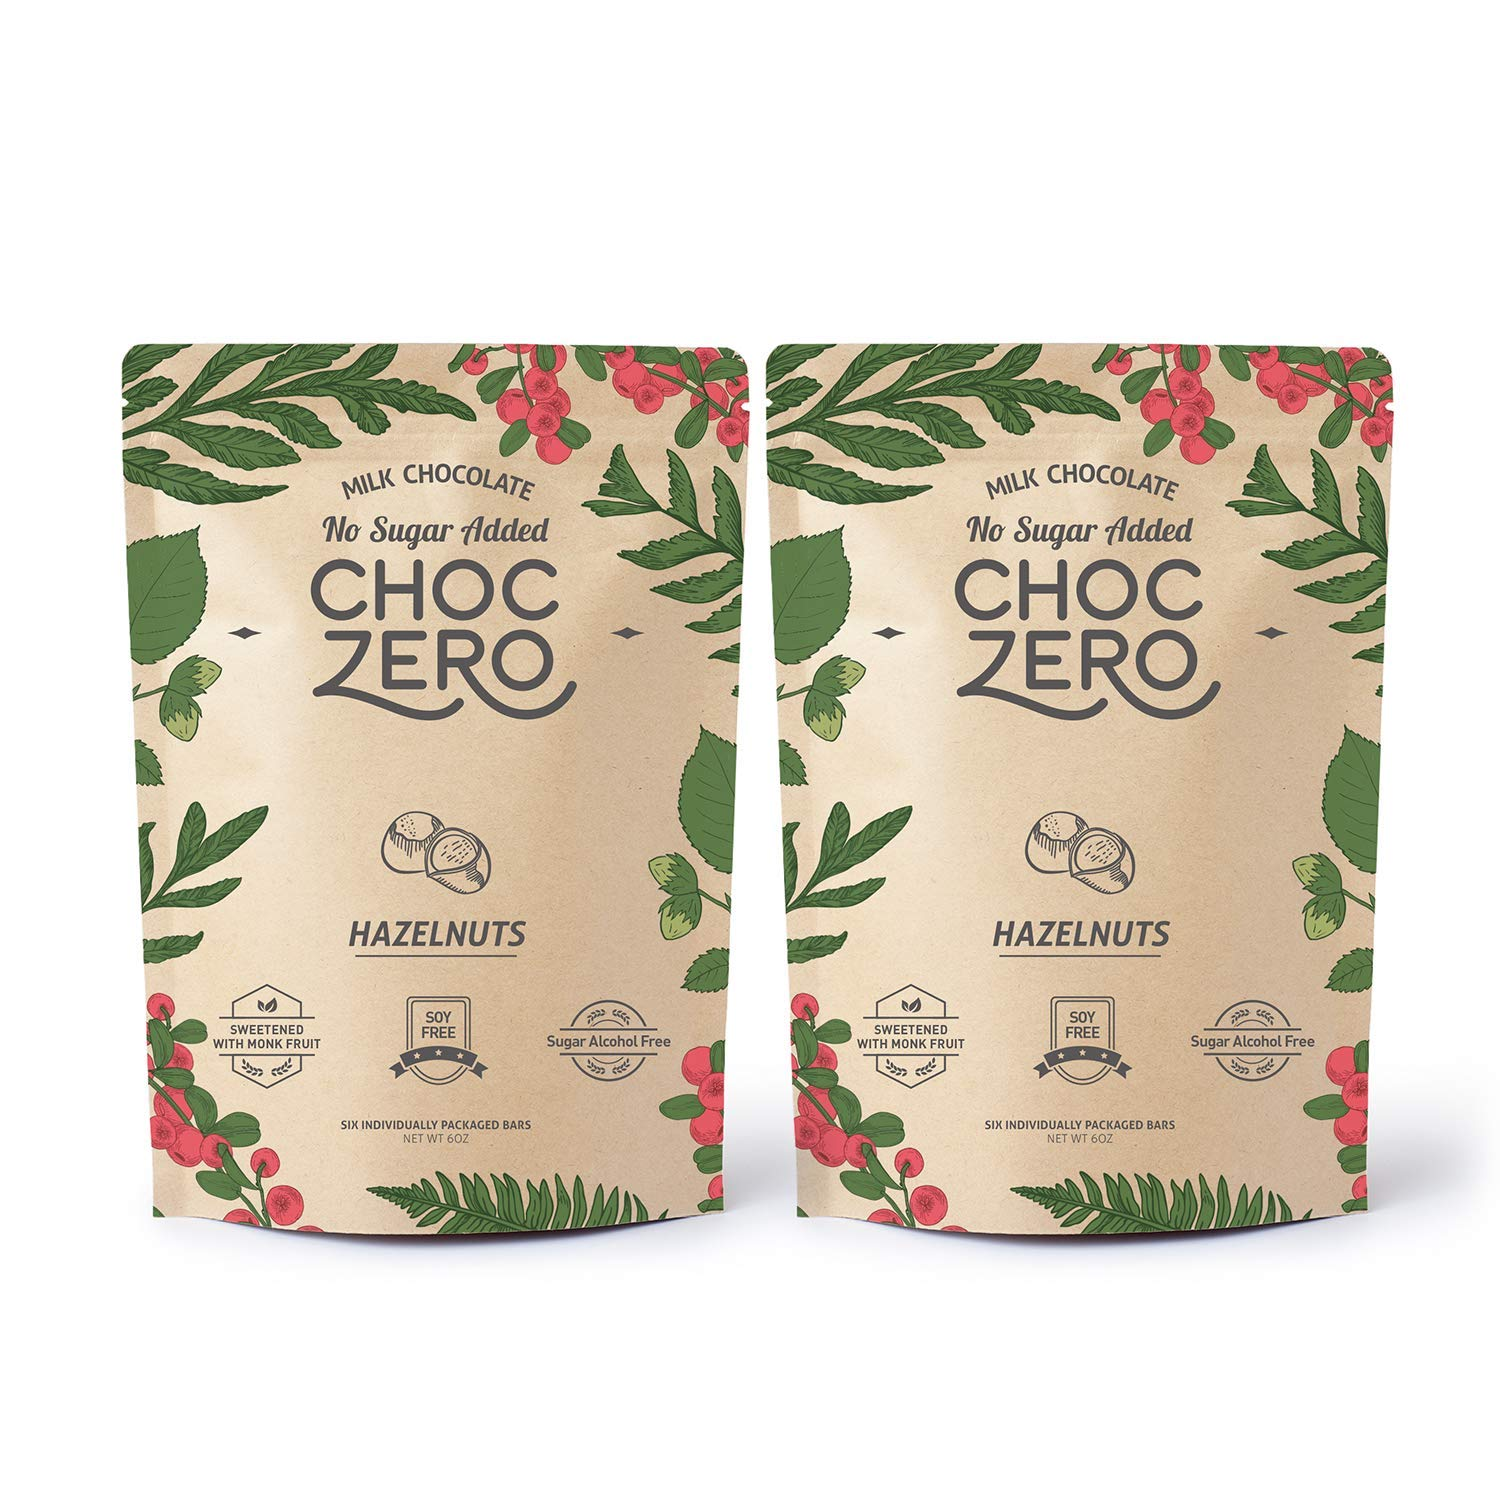 ChocZero's Keto Bark, Milk Chocolate Hazelnuts, No Added Sugar, Low Carb, No Sugar Alcohols, Non-GMO (2 bags, 6 servings/each)